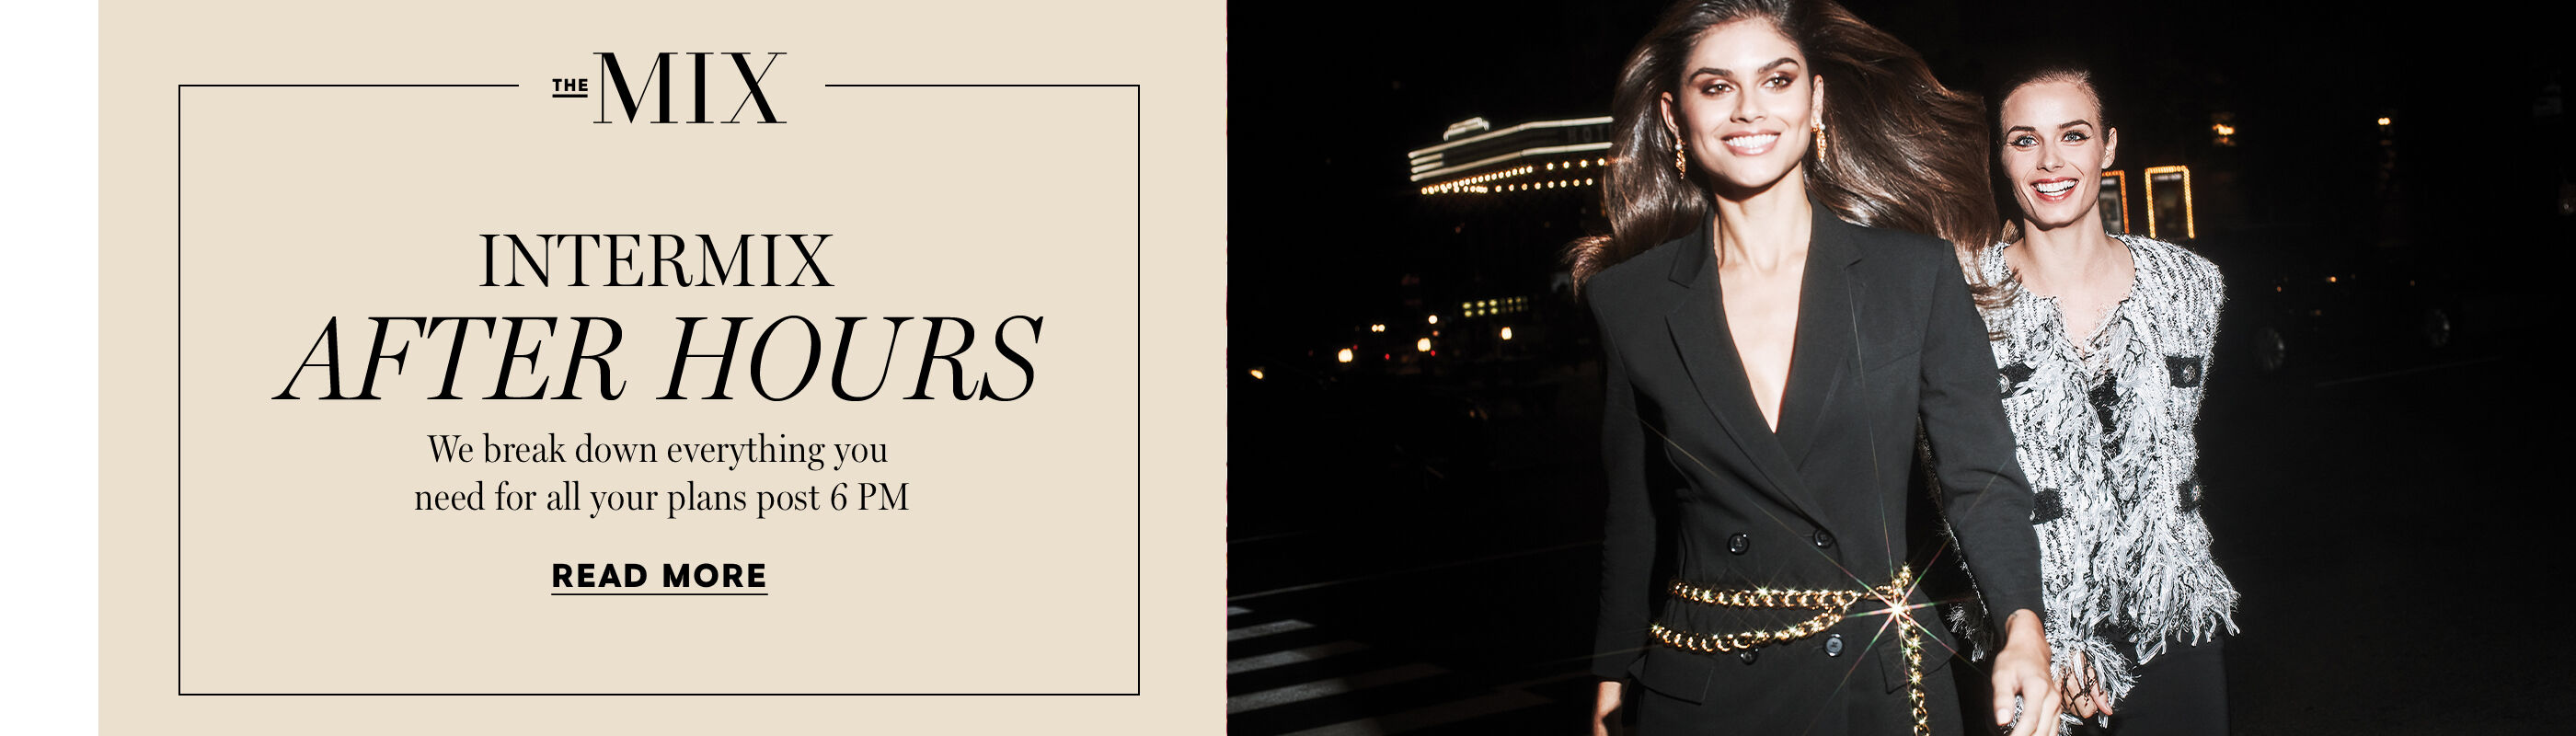 Introducing INTERMIX After Hours